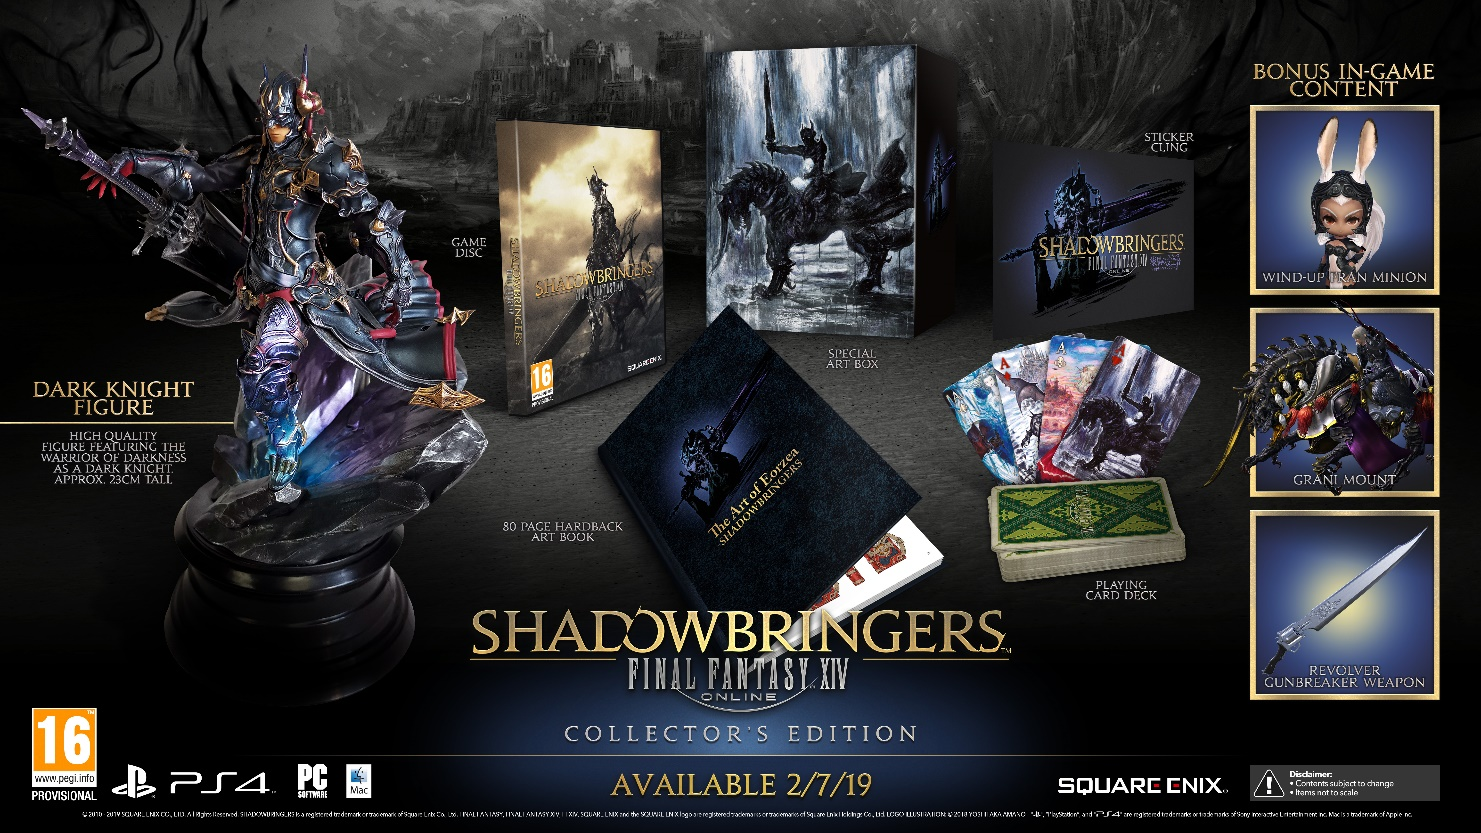 Final Fantasy XIV: Shadowbringers launches July 2